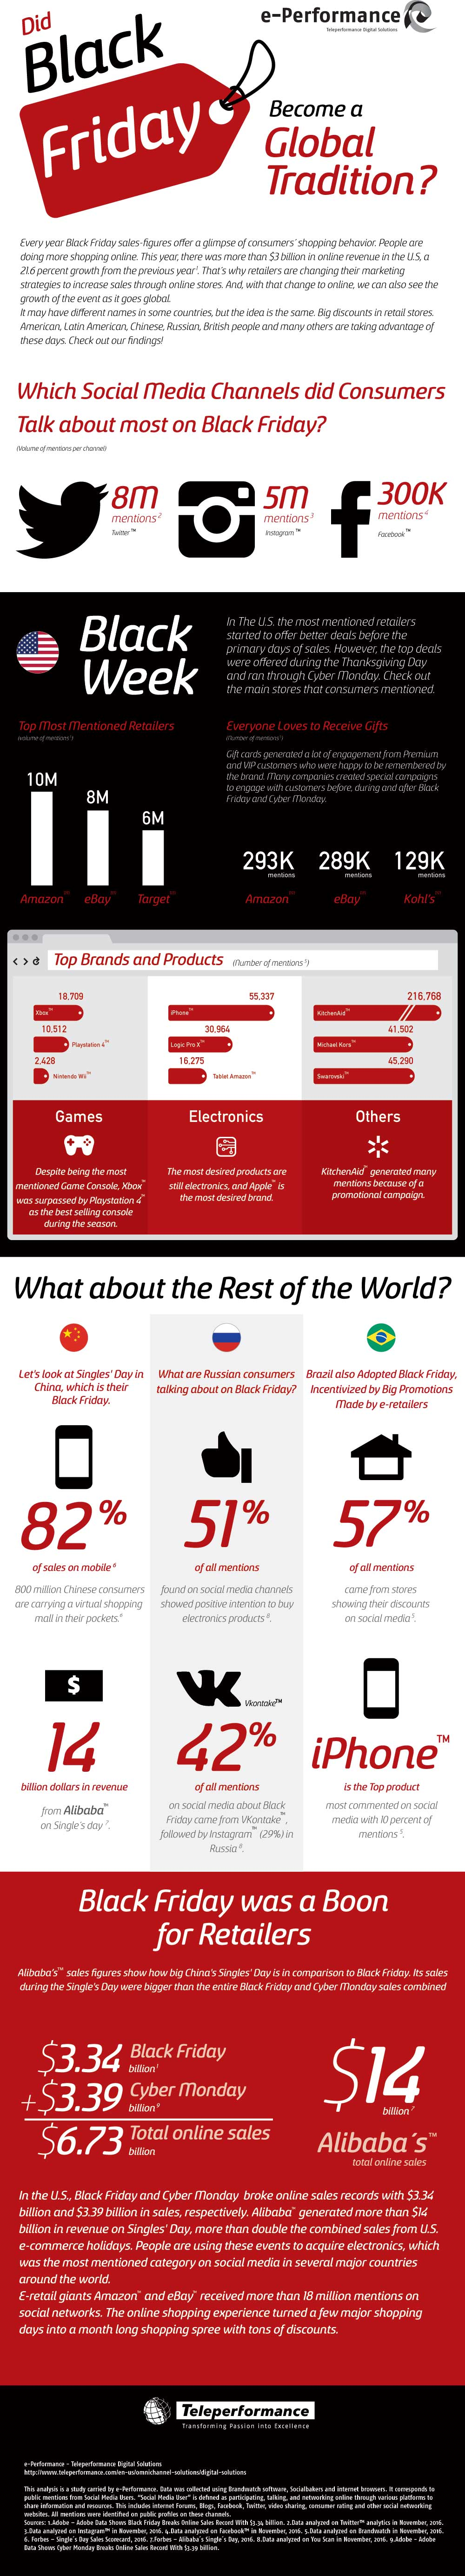 Infographic: Black Friday is a Worldwide Phenomenon